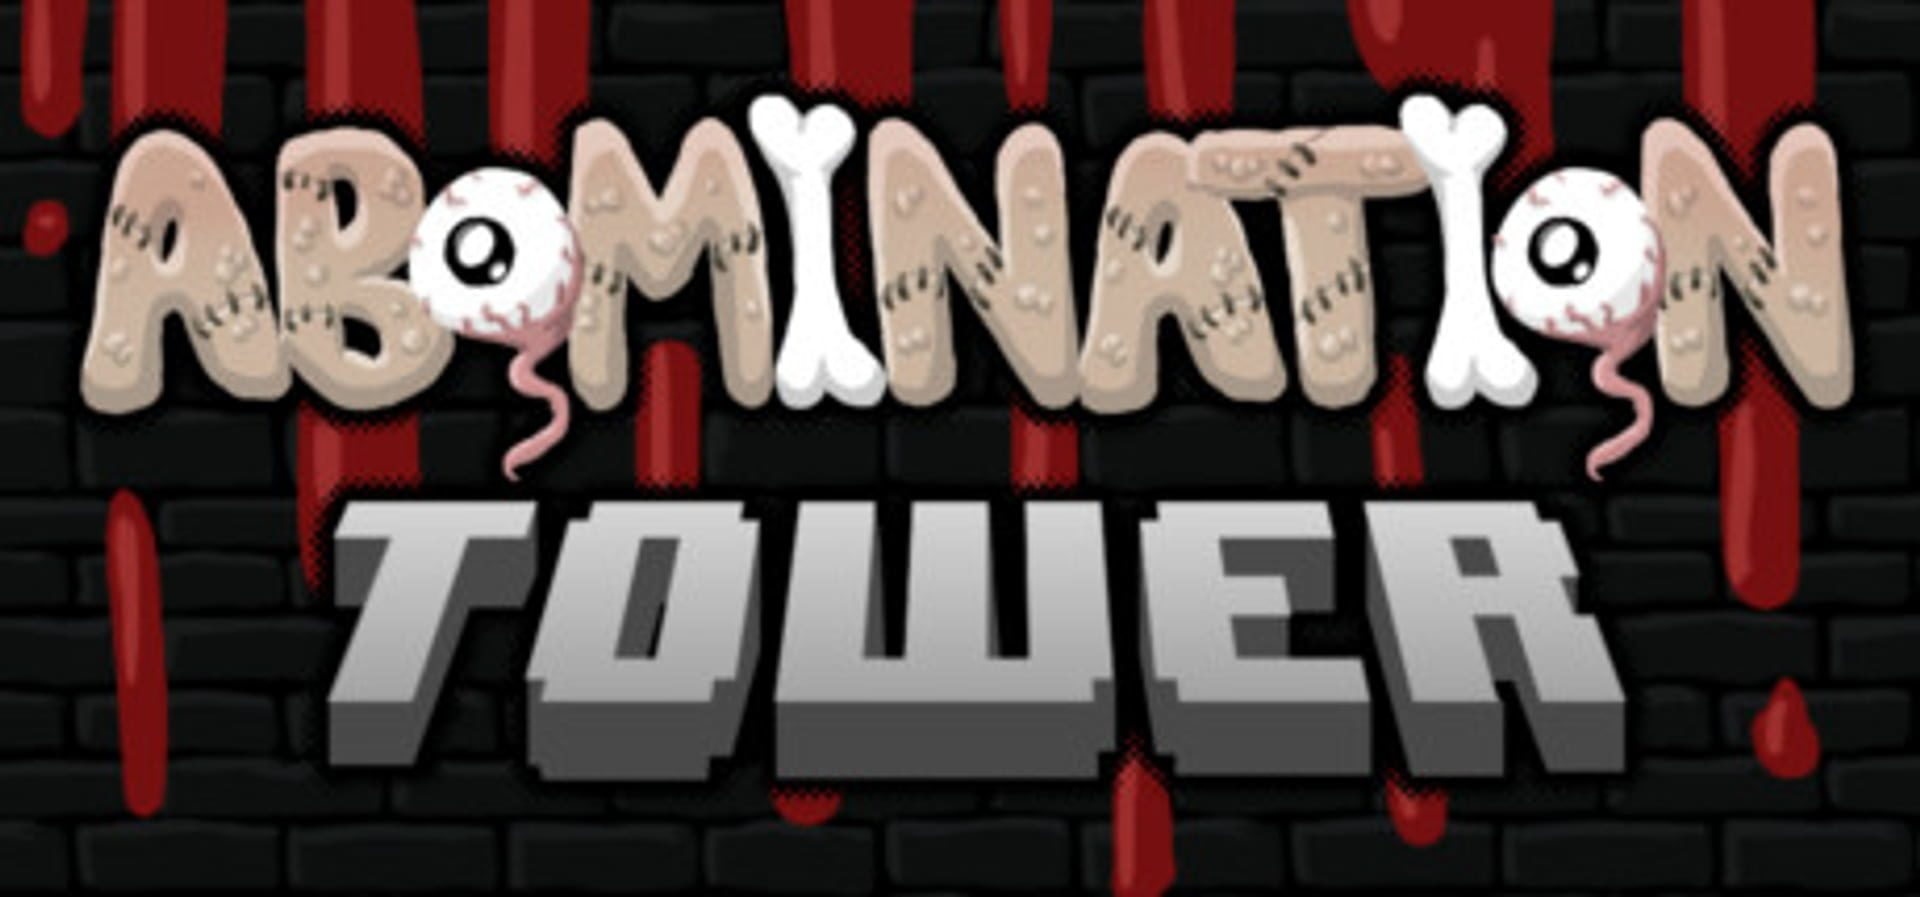 buy Abomination Tower cd key for pc platform